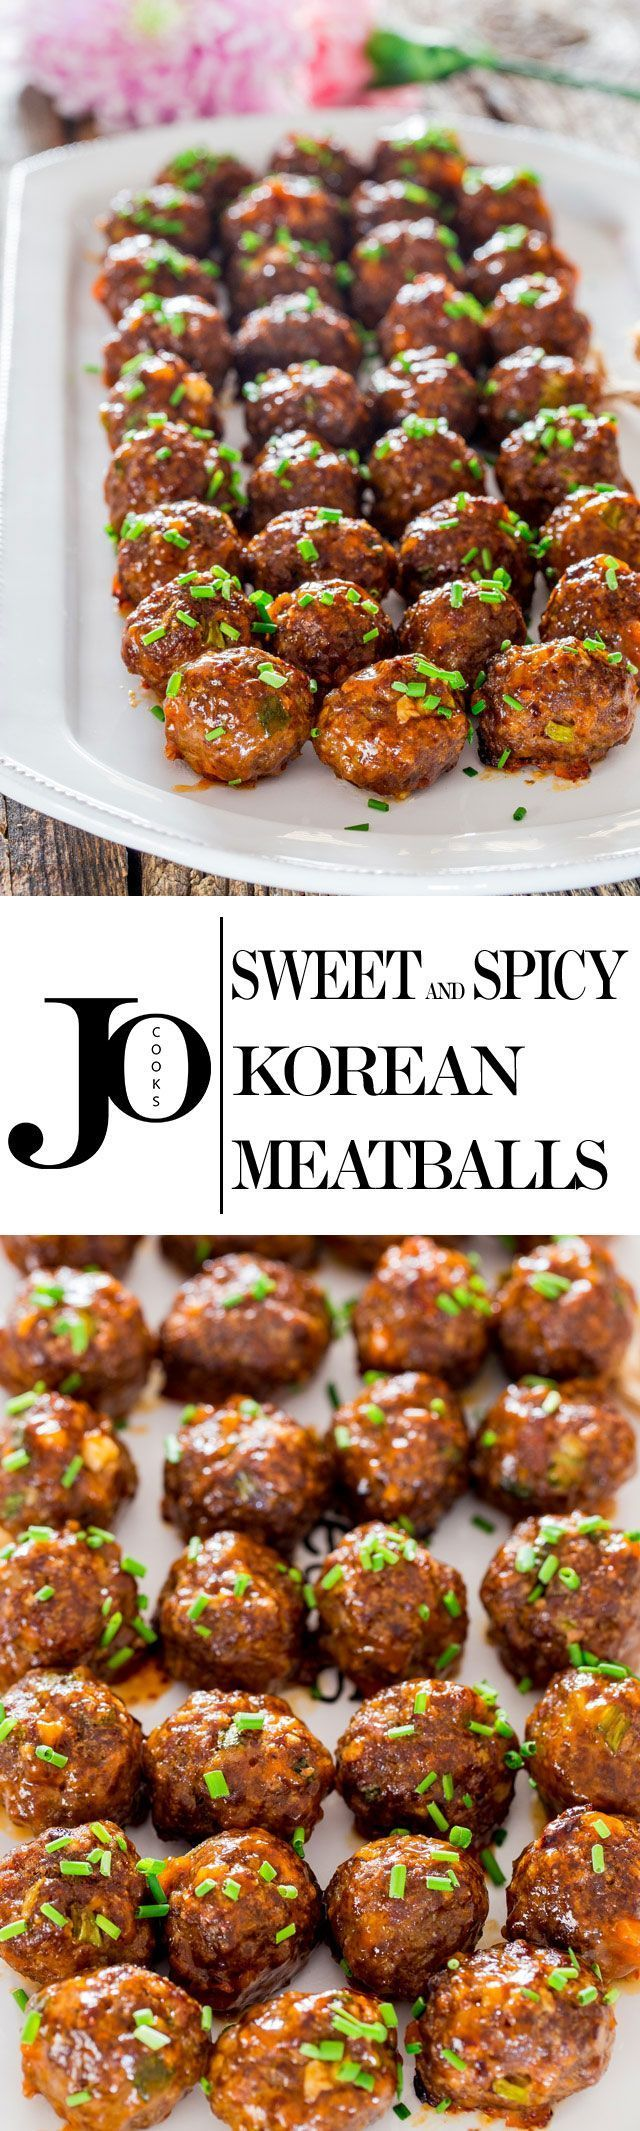 These Sweet and Spicy Korean Meatballs will change your life. They're made with lean beef, flavored with garlic and Sriracha sauce, baked without the hassle of frying and glazed with a spicy apricot glaze.